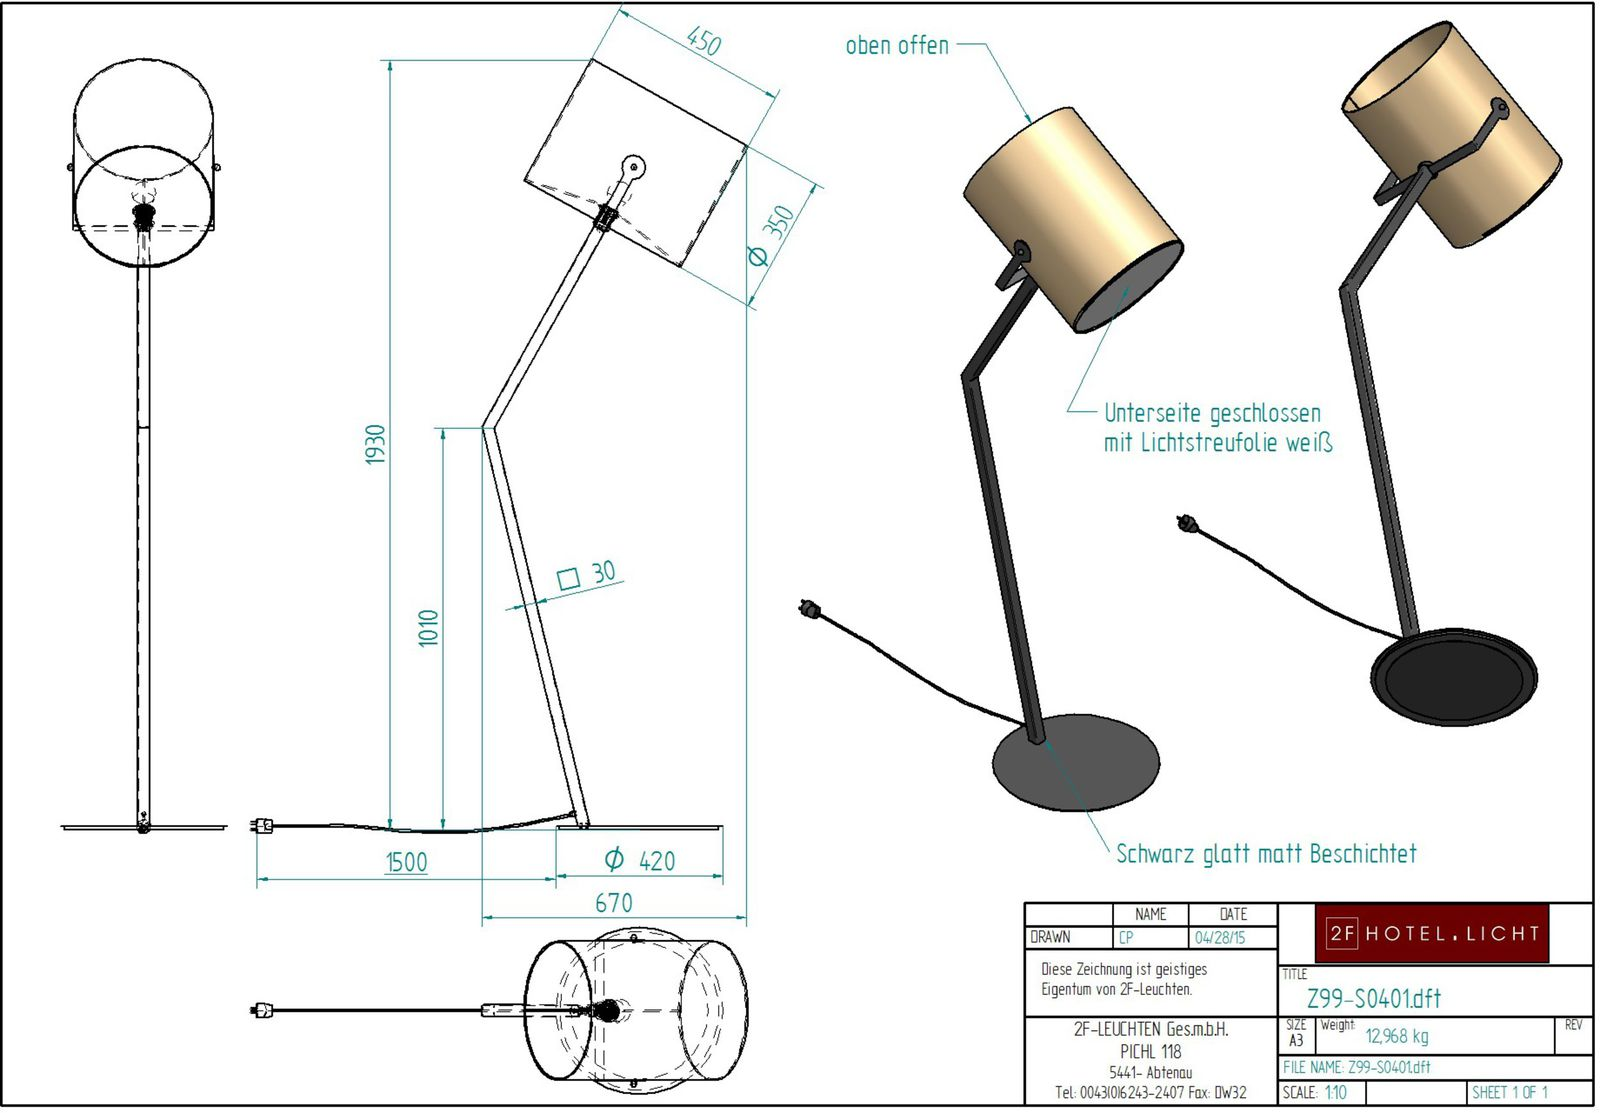 Floor Lamp, L:640mm, wide:420mm, H:1890mm, surface: Metal: SWM black, techn. Data: 1xE27, 75W, 230V A60, cable colour: black